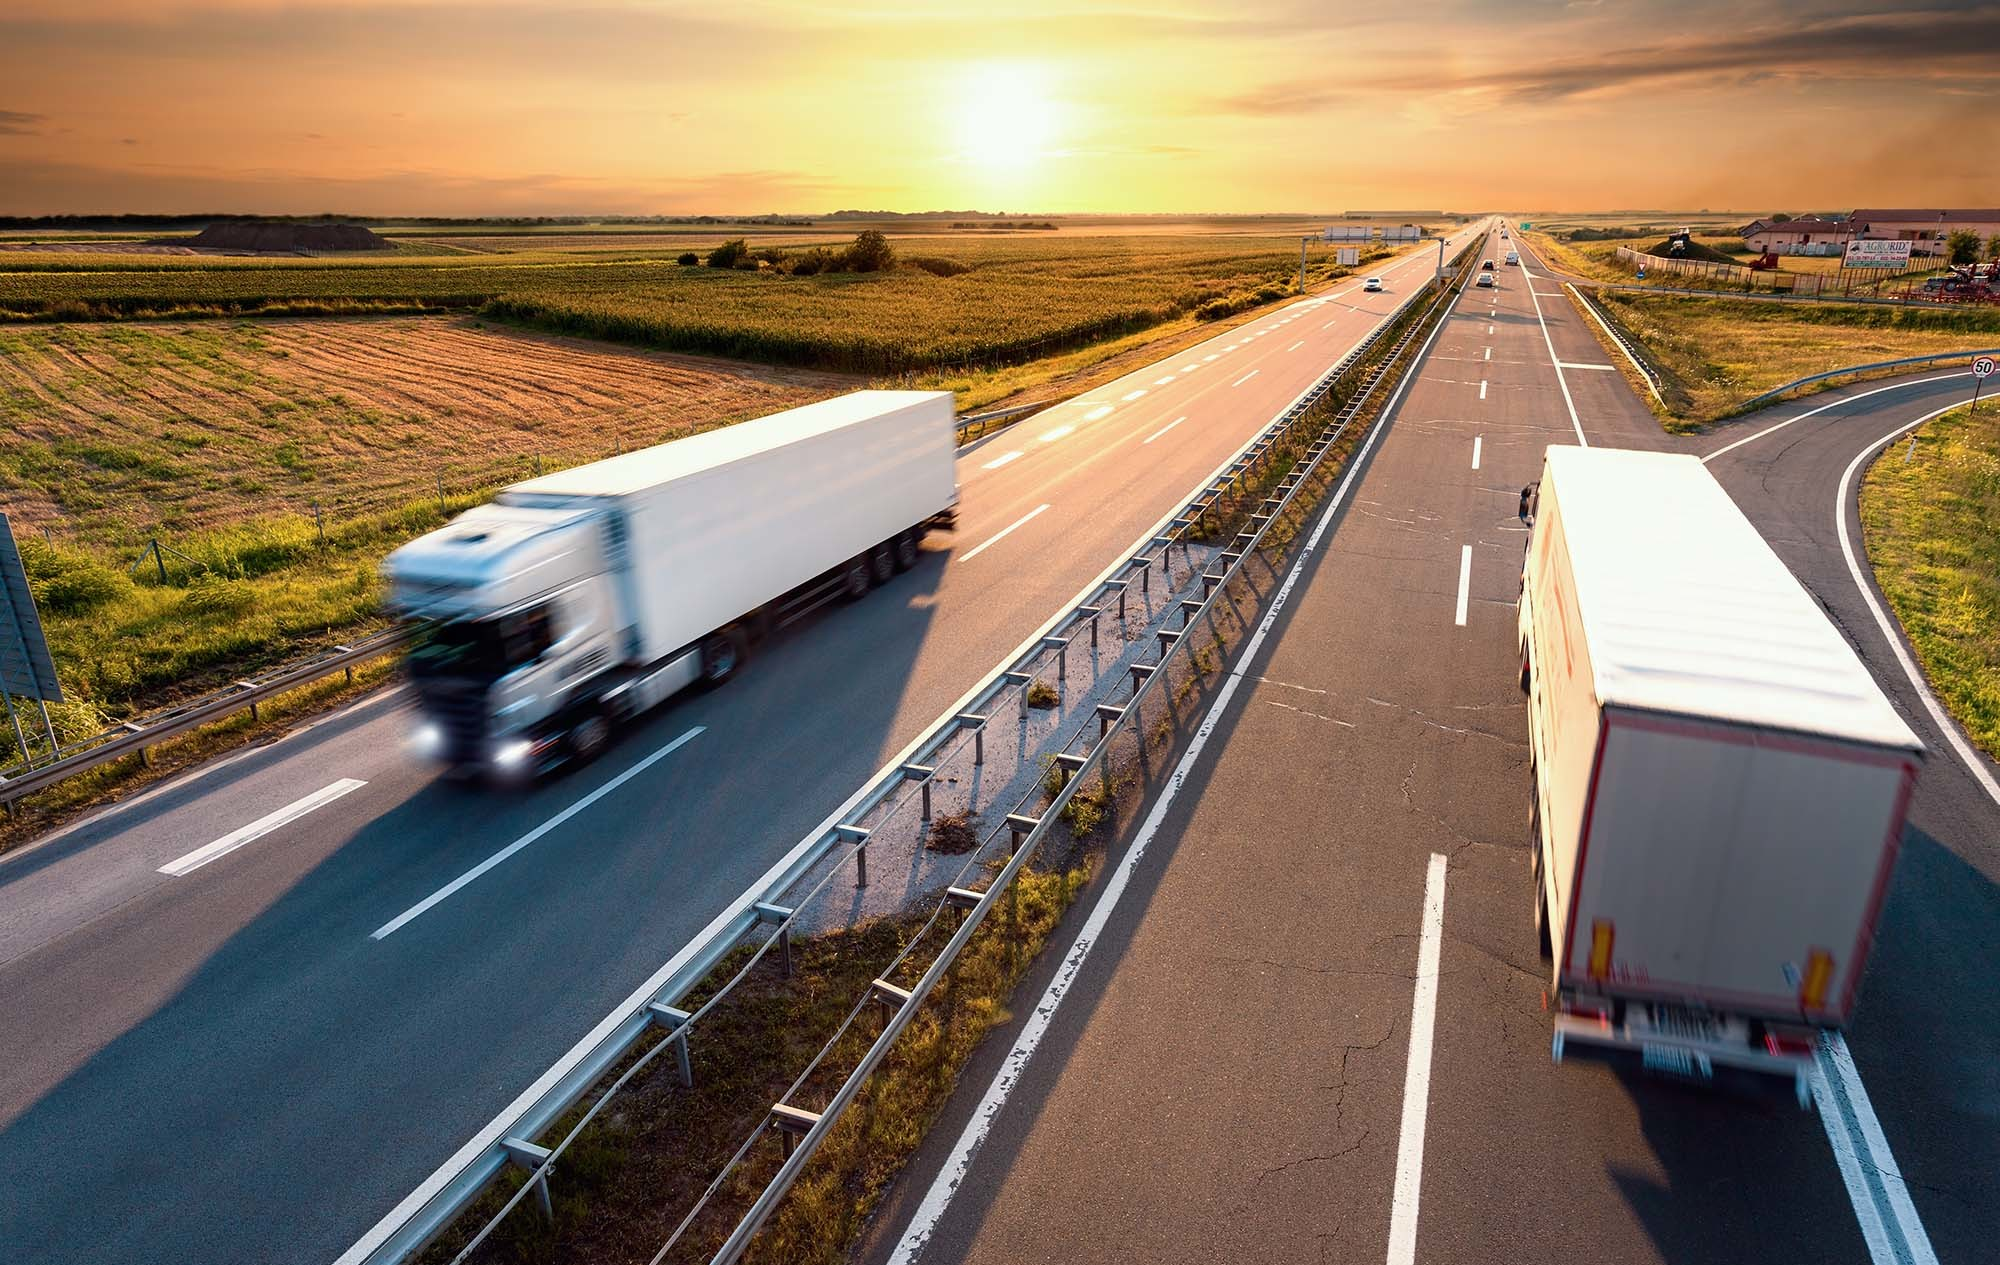 Two trucks on the highway powered by climate-friendly fuels